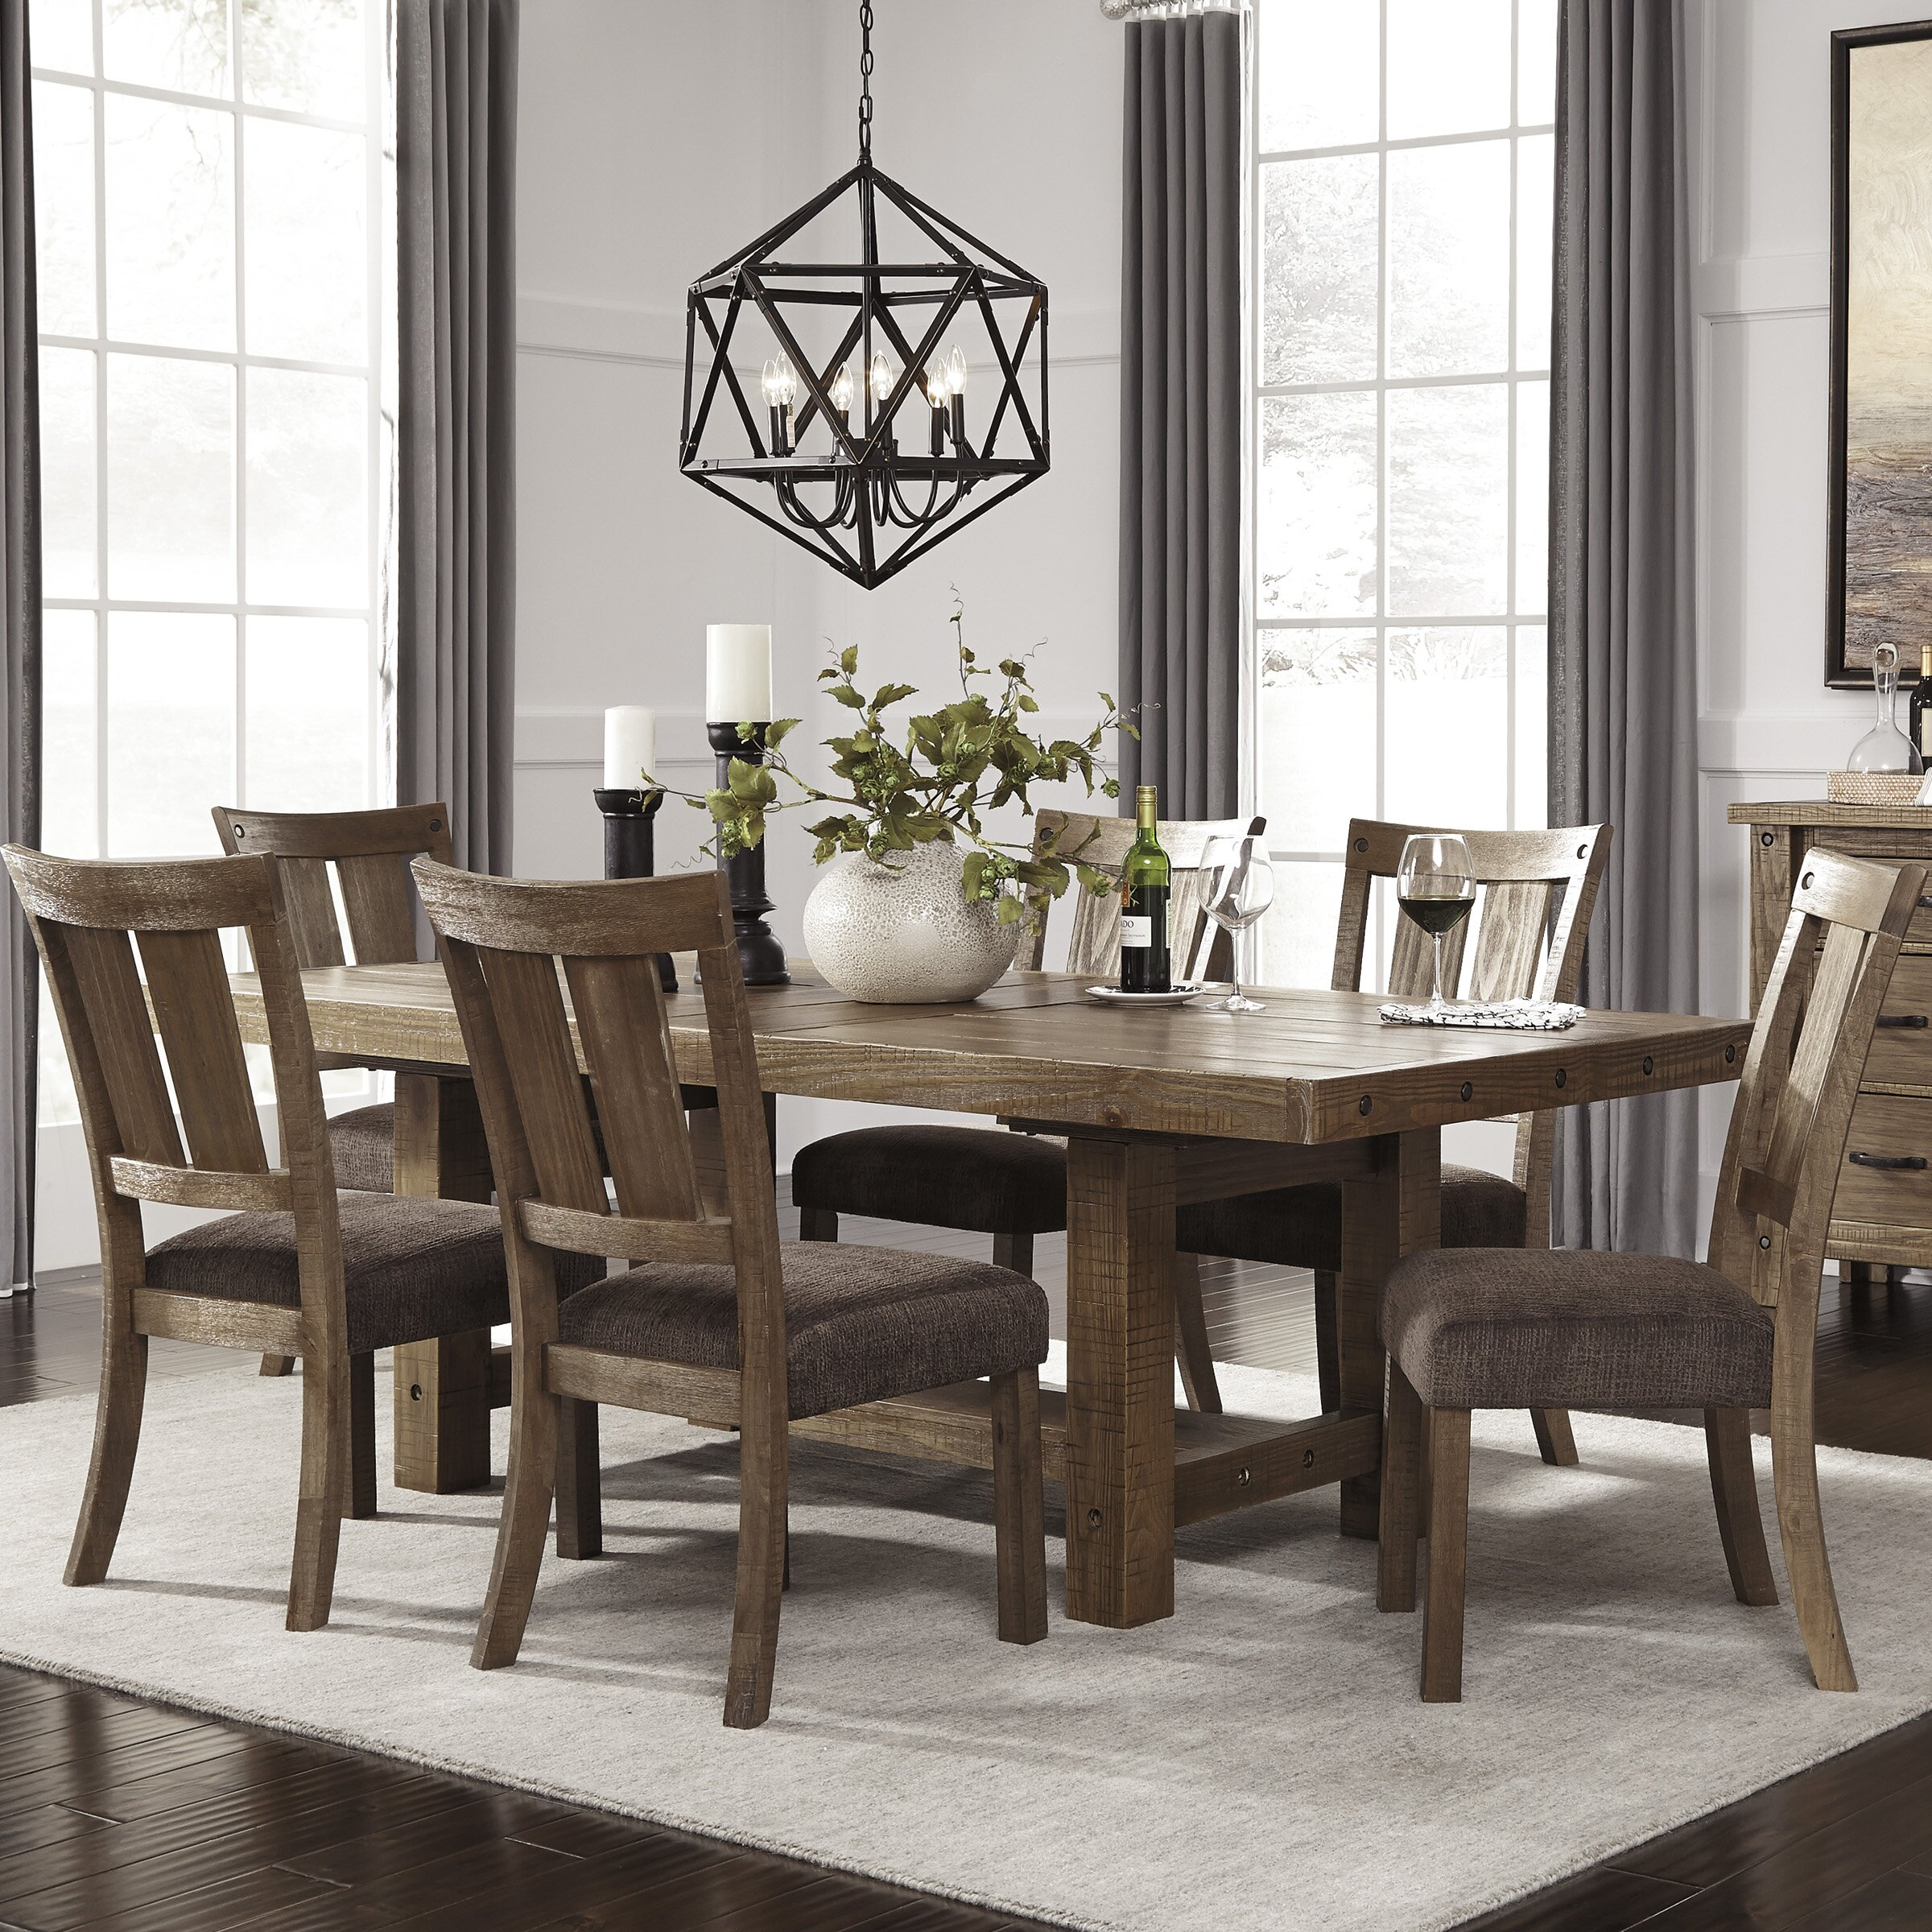 Dining Room Sets: Signature Design By Ashley 7 Piece Dining Set & Reviews